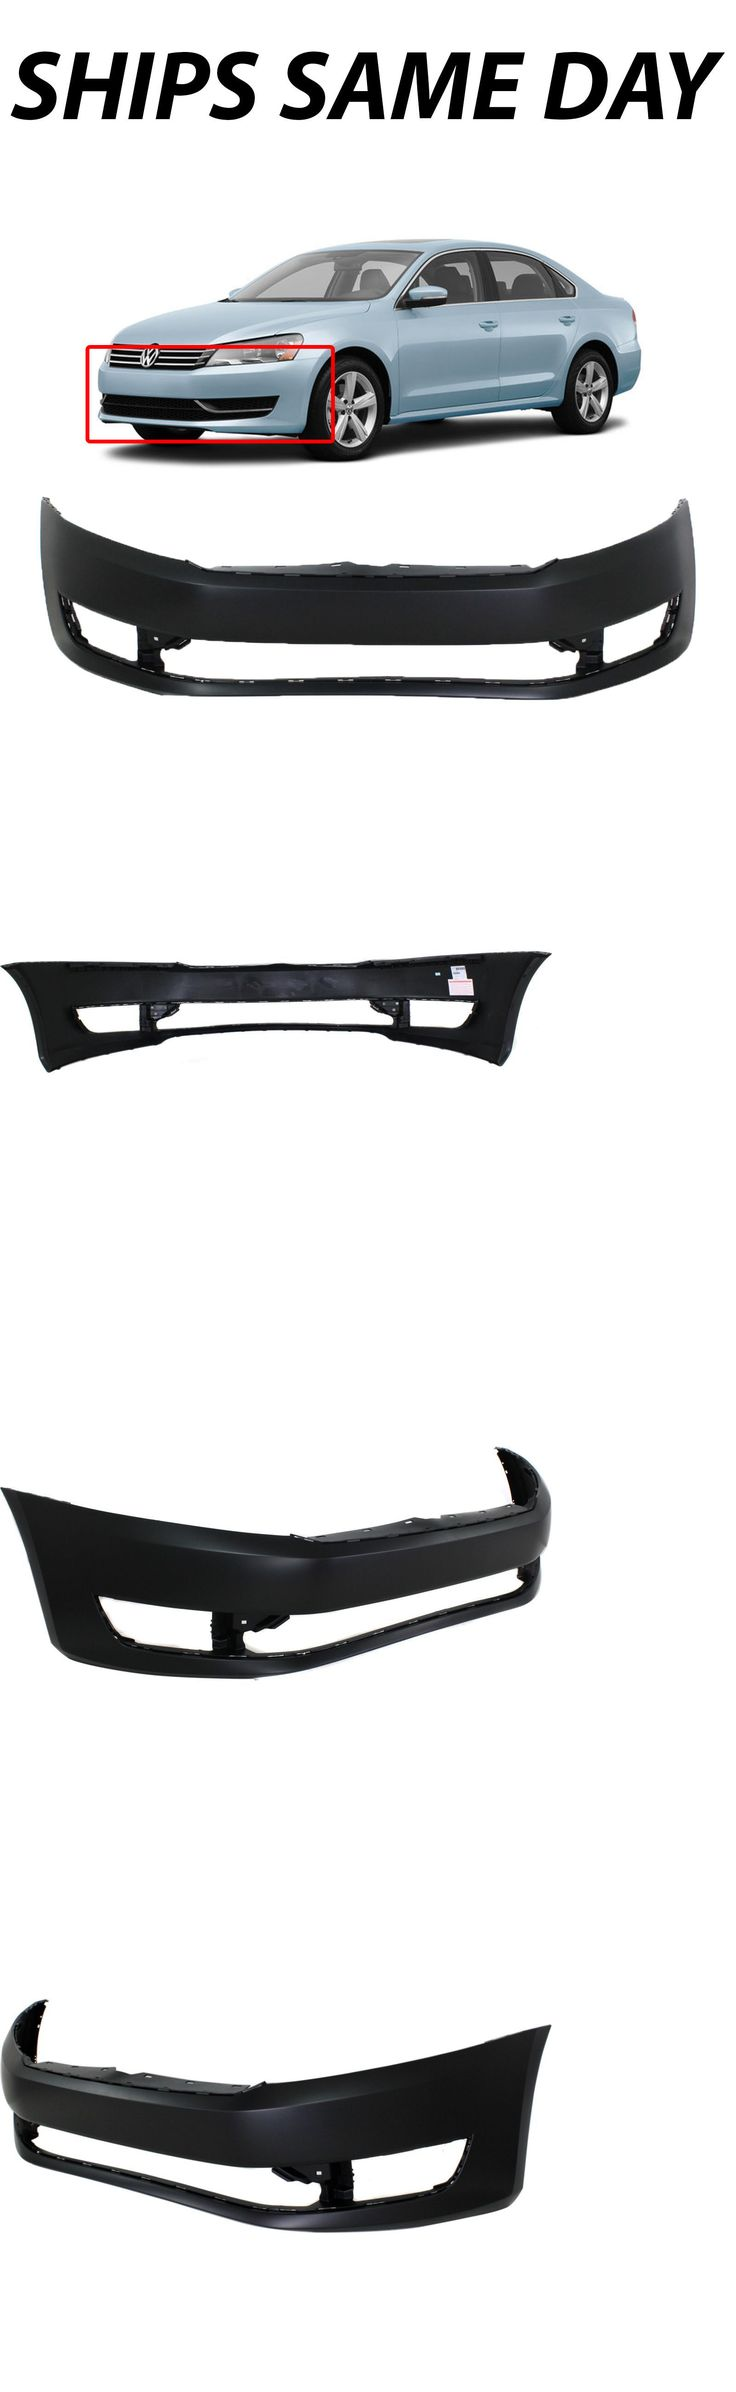 Auto parts general new primered front bumper cover for 2012 2013 2014 2015